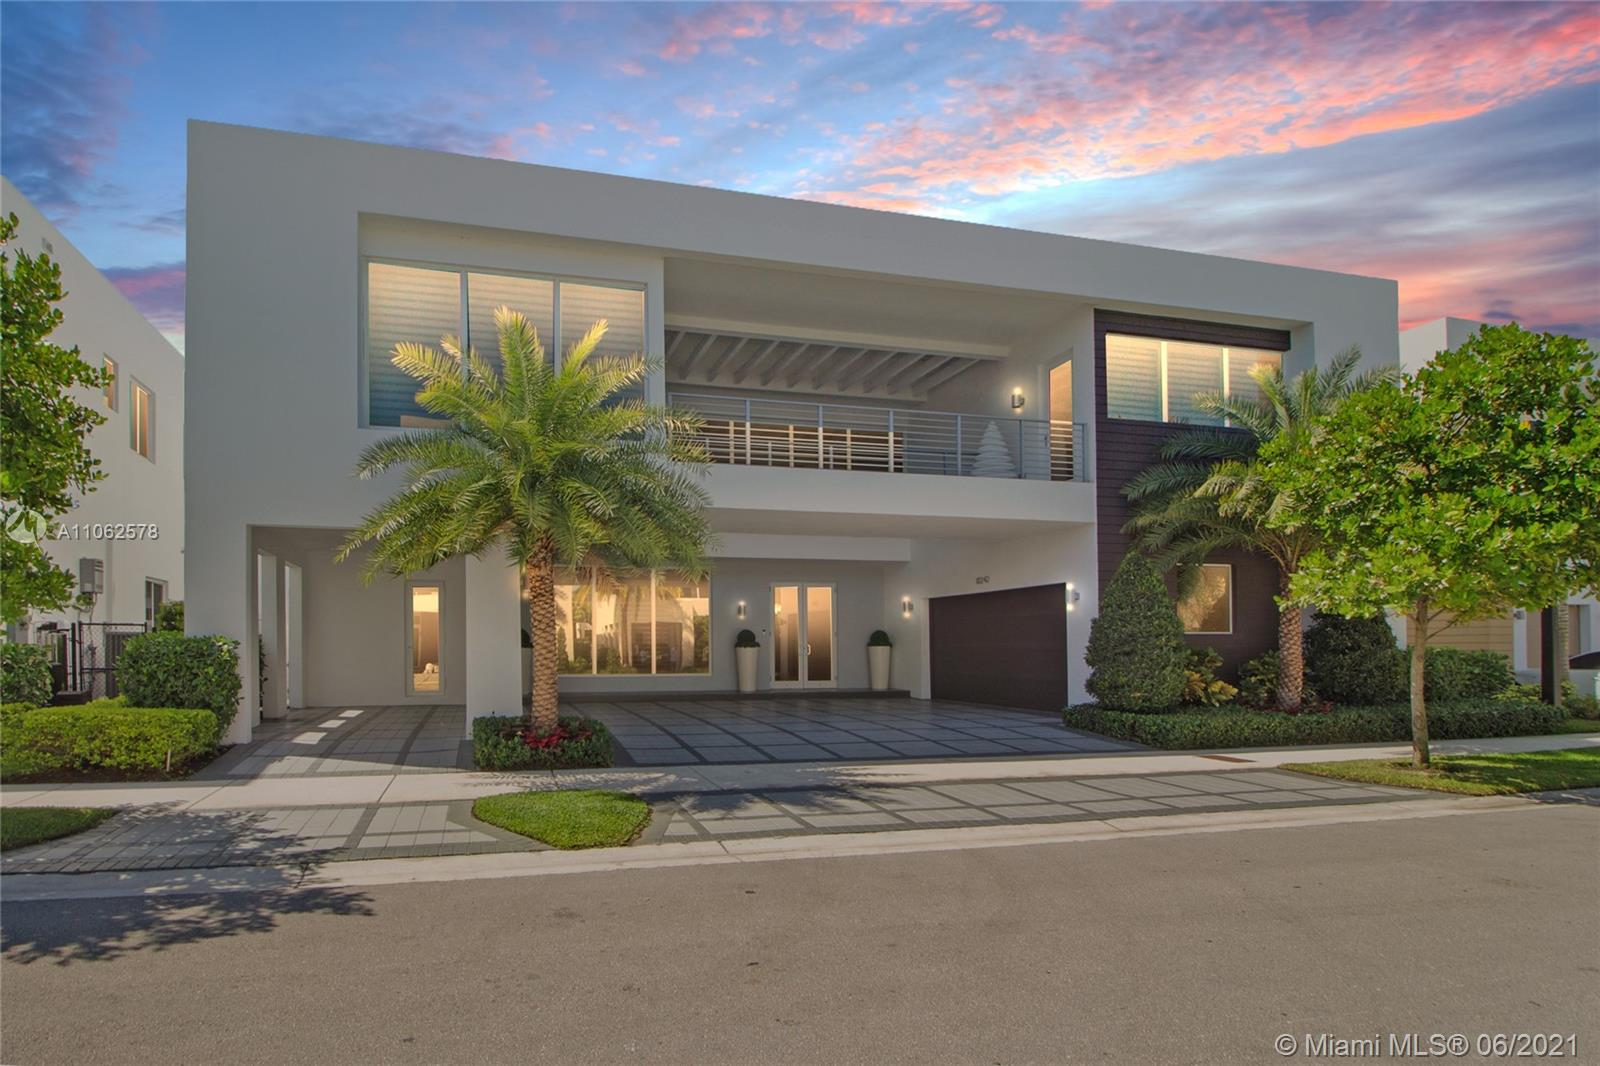 Photo of 10242 NW 75th Ter, Doral, FL 33178